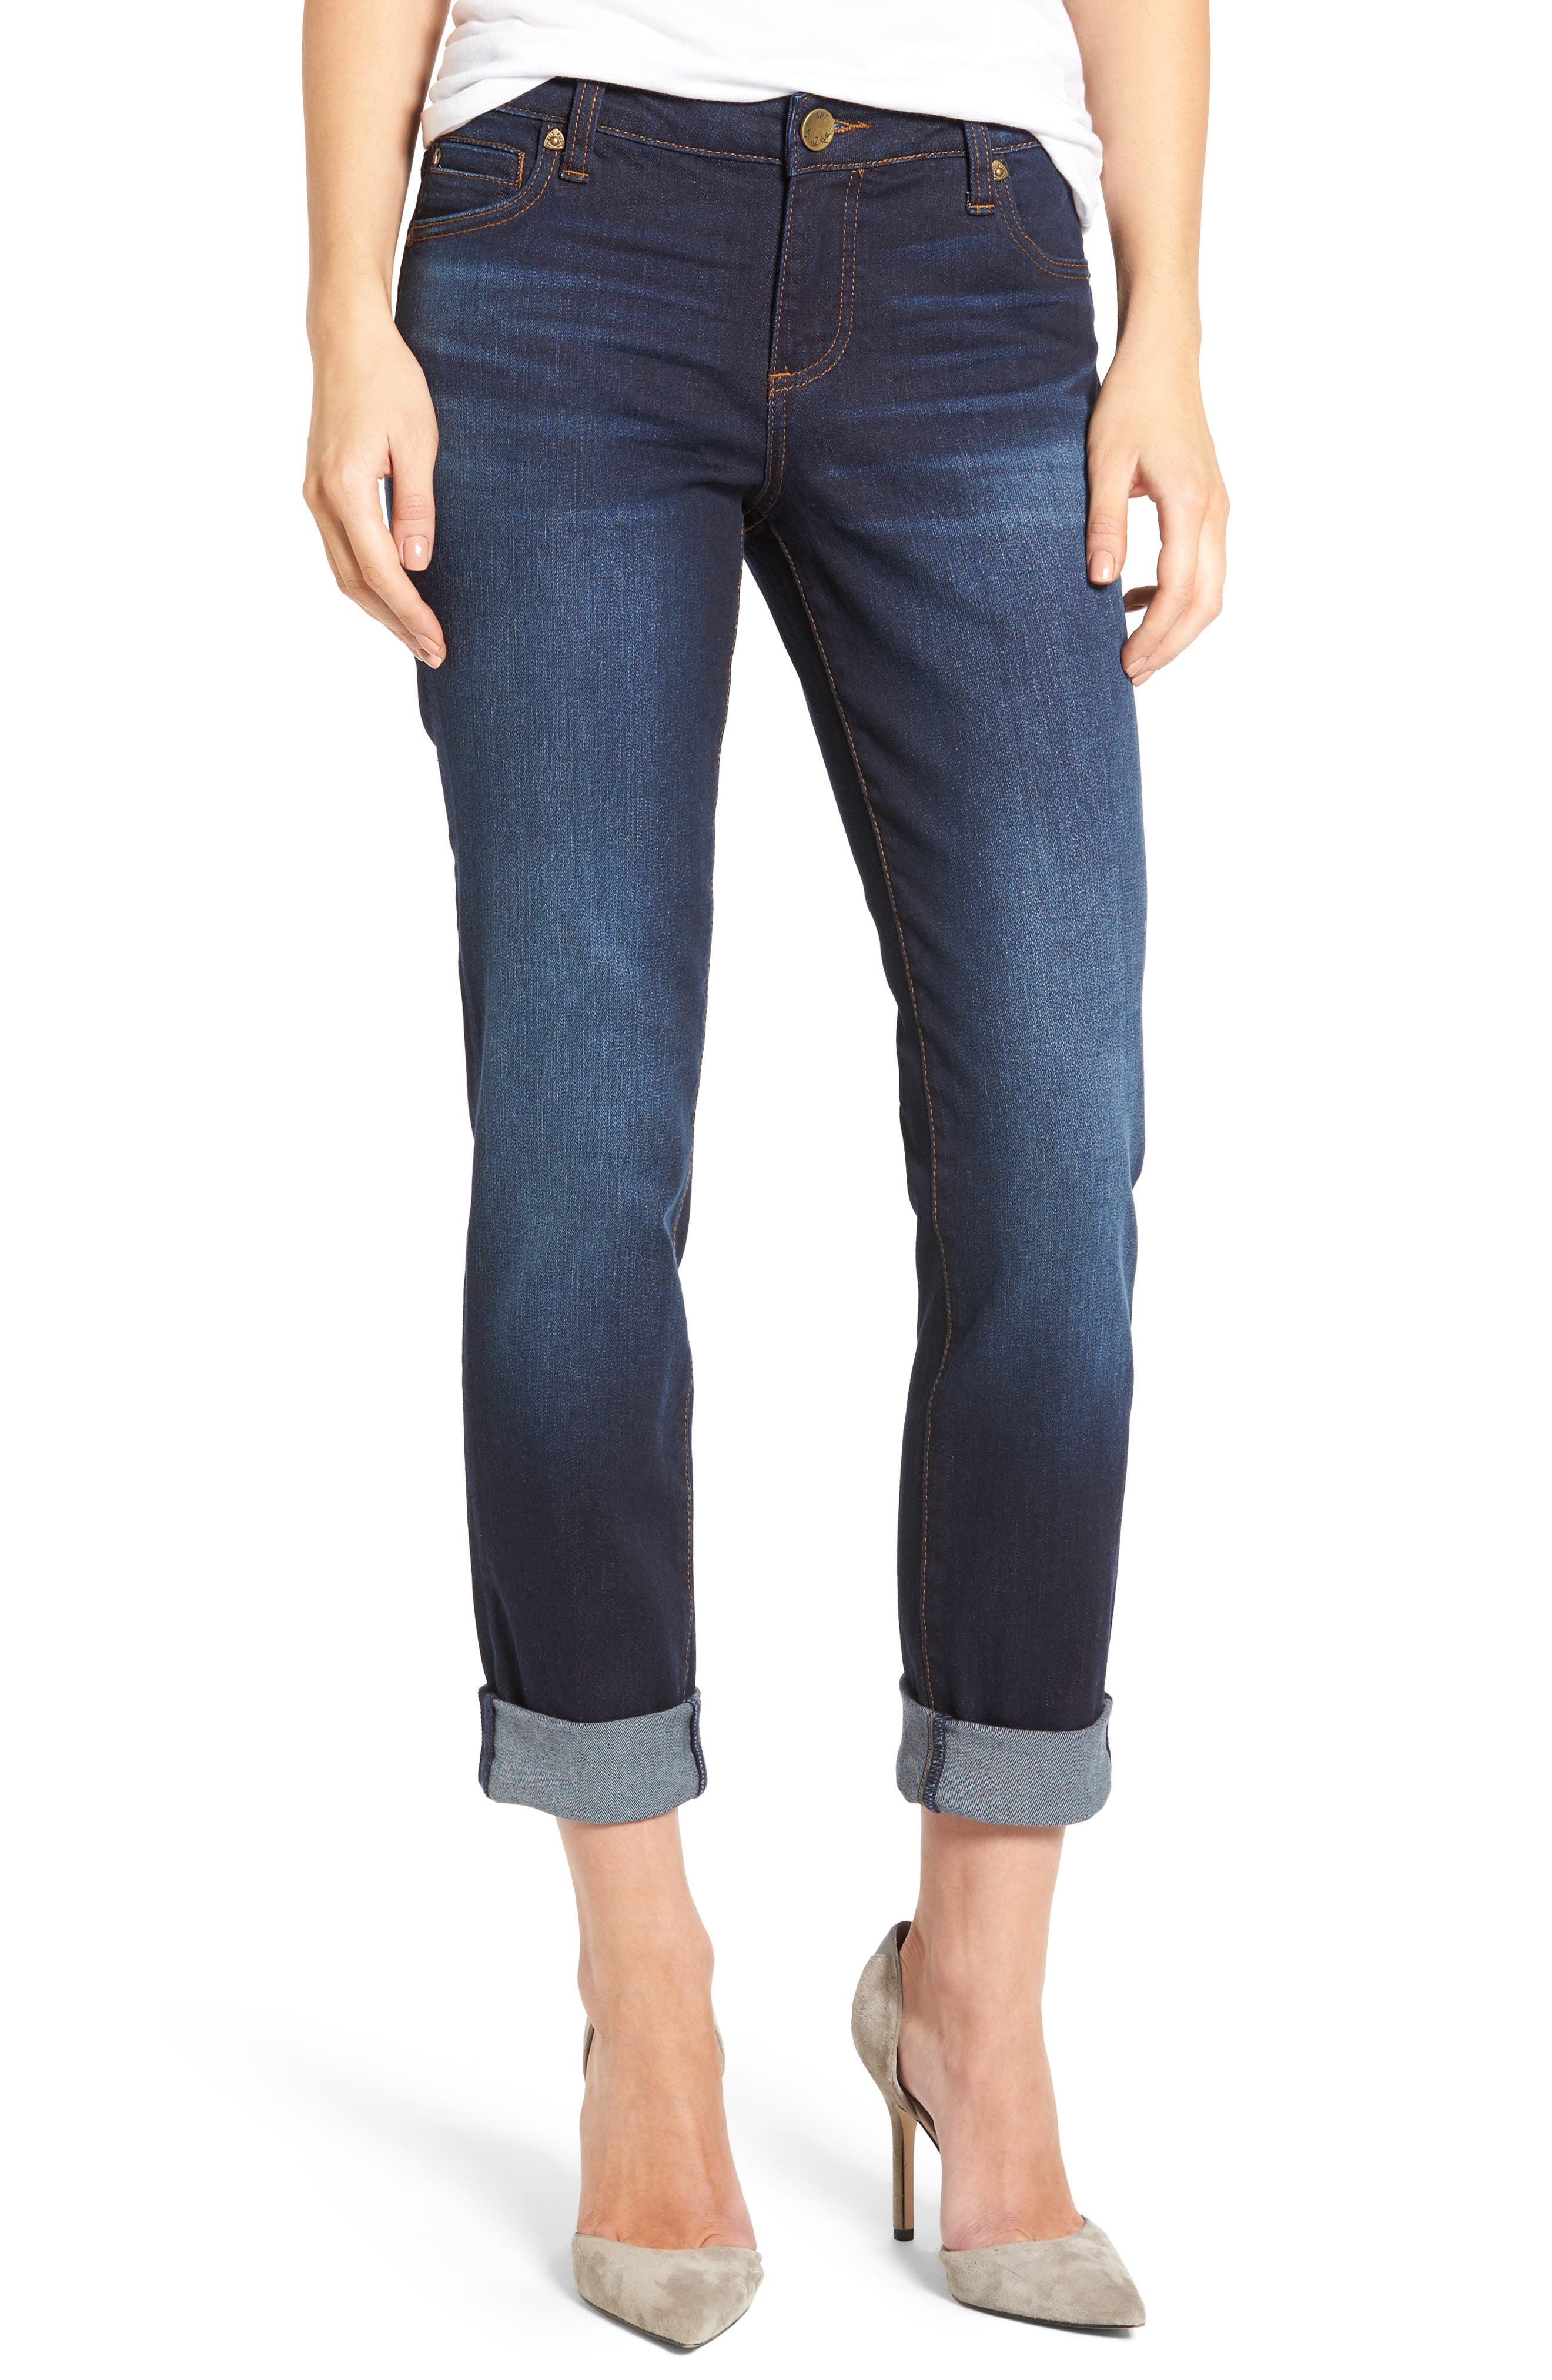 Alternate Image 1 Selected - KUT from the Kloth Catherine Boyfriend Jeans (Adaptability)